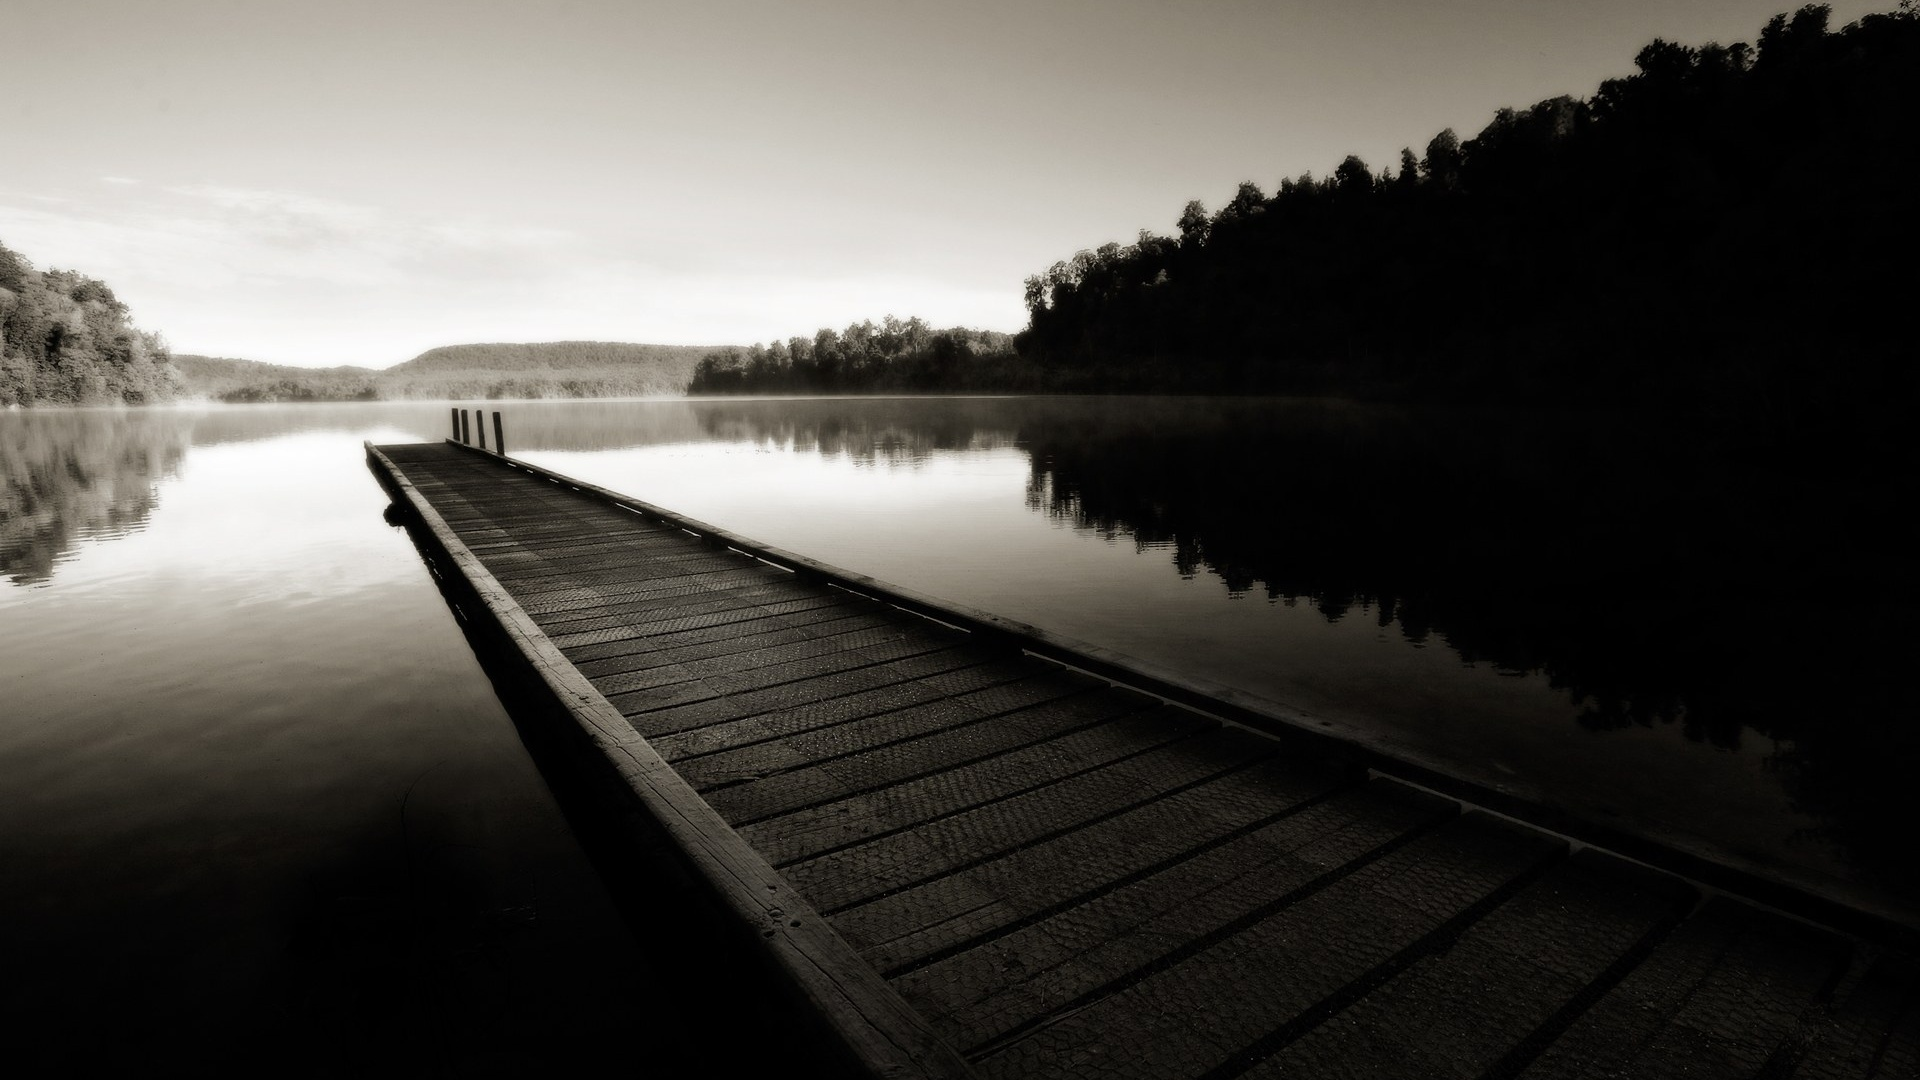 Serene Pictures